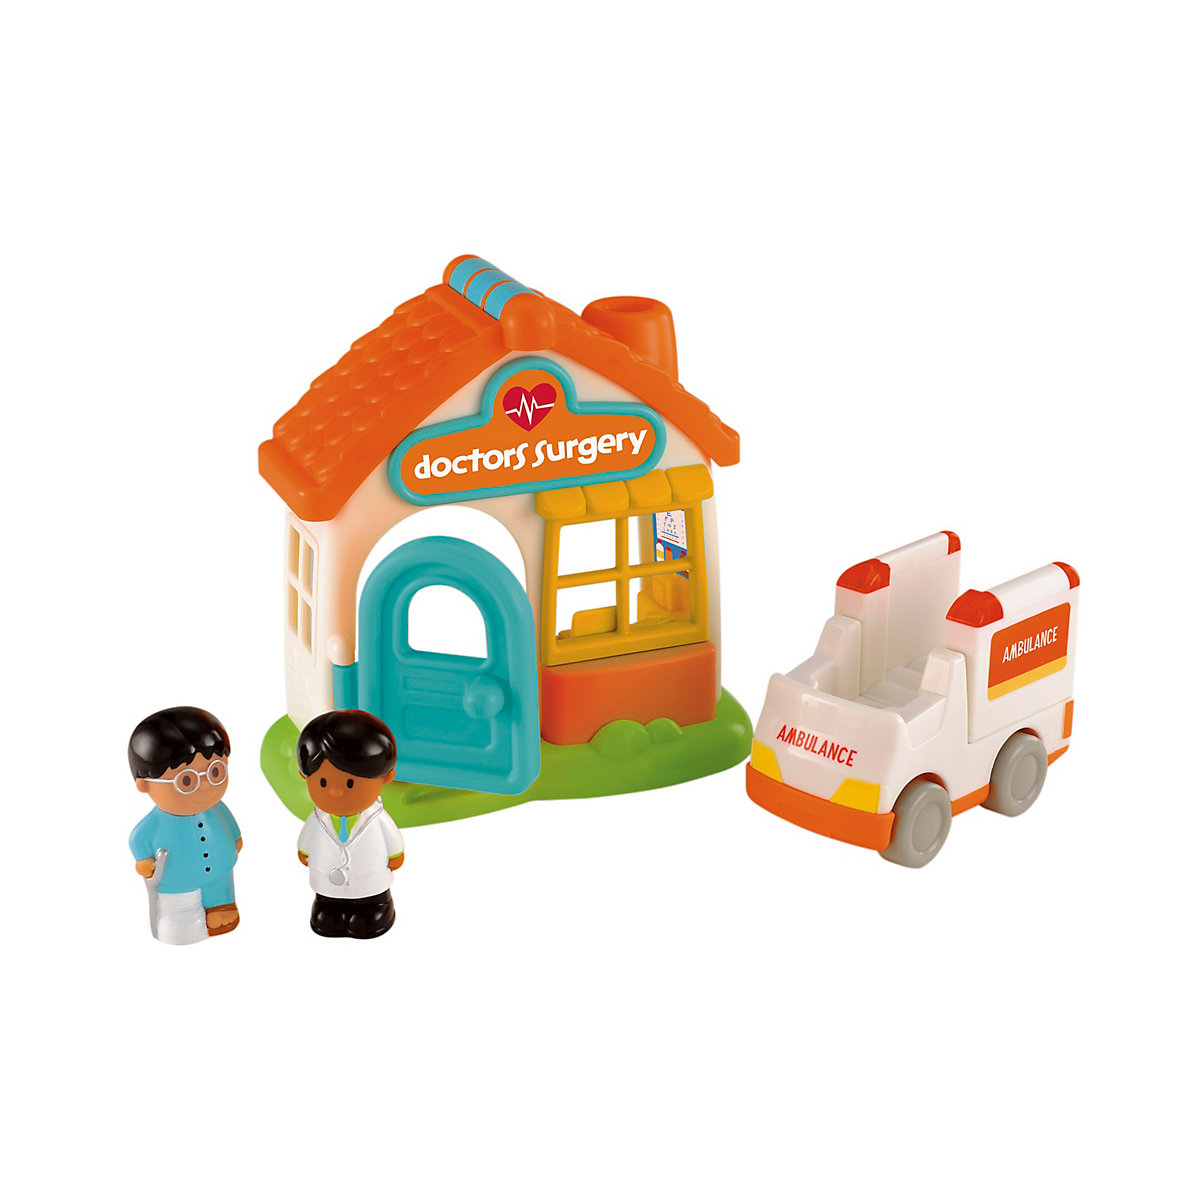 New ELC Boys and Girls Happyland Doctor's Surgery Toy From 18 months - Toddler Gifts